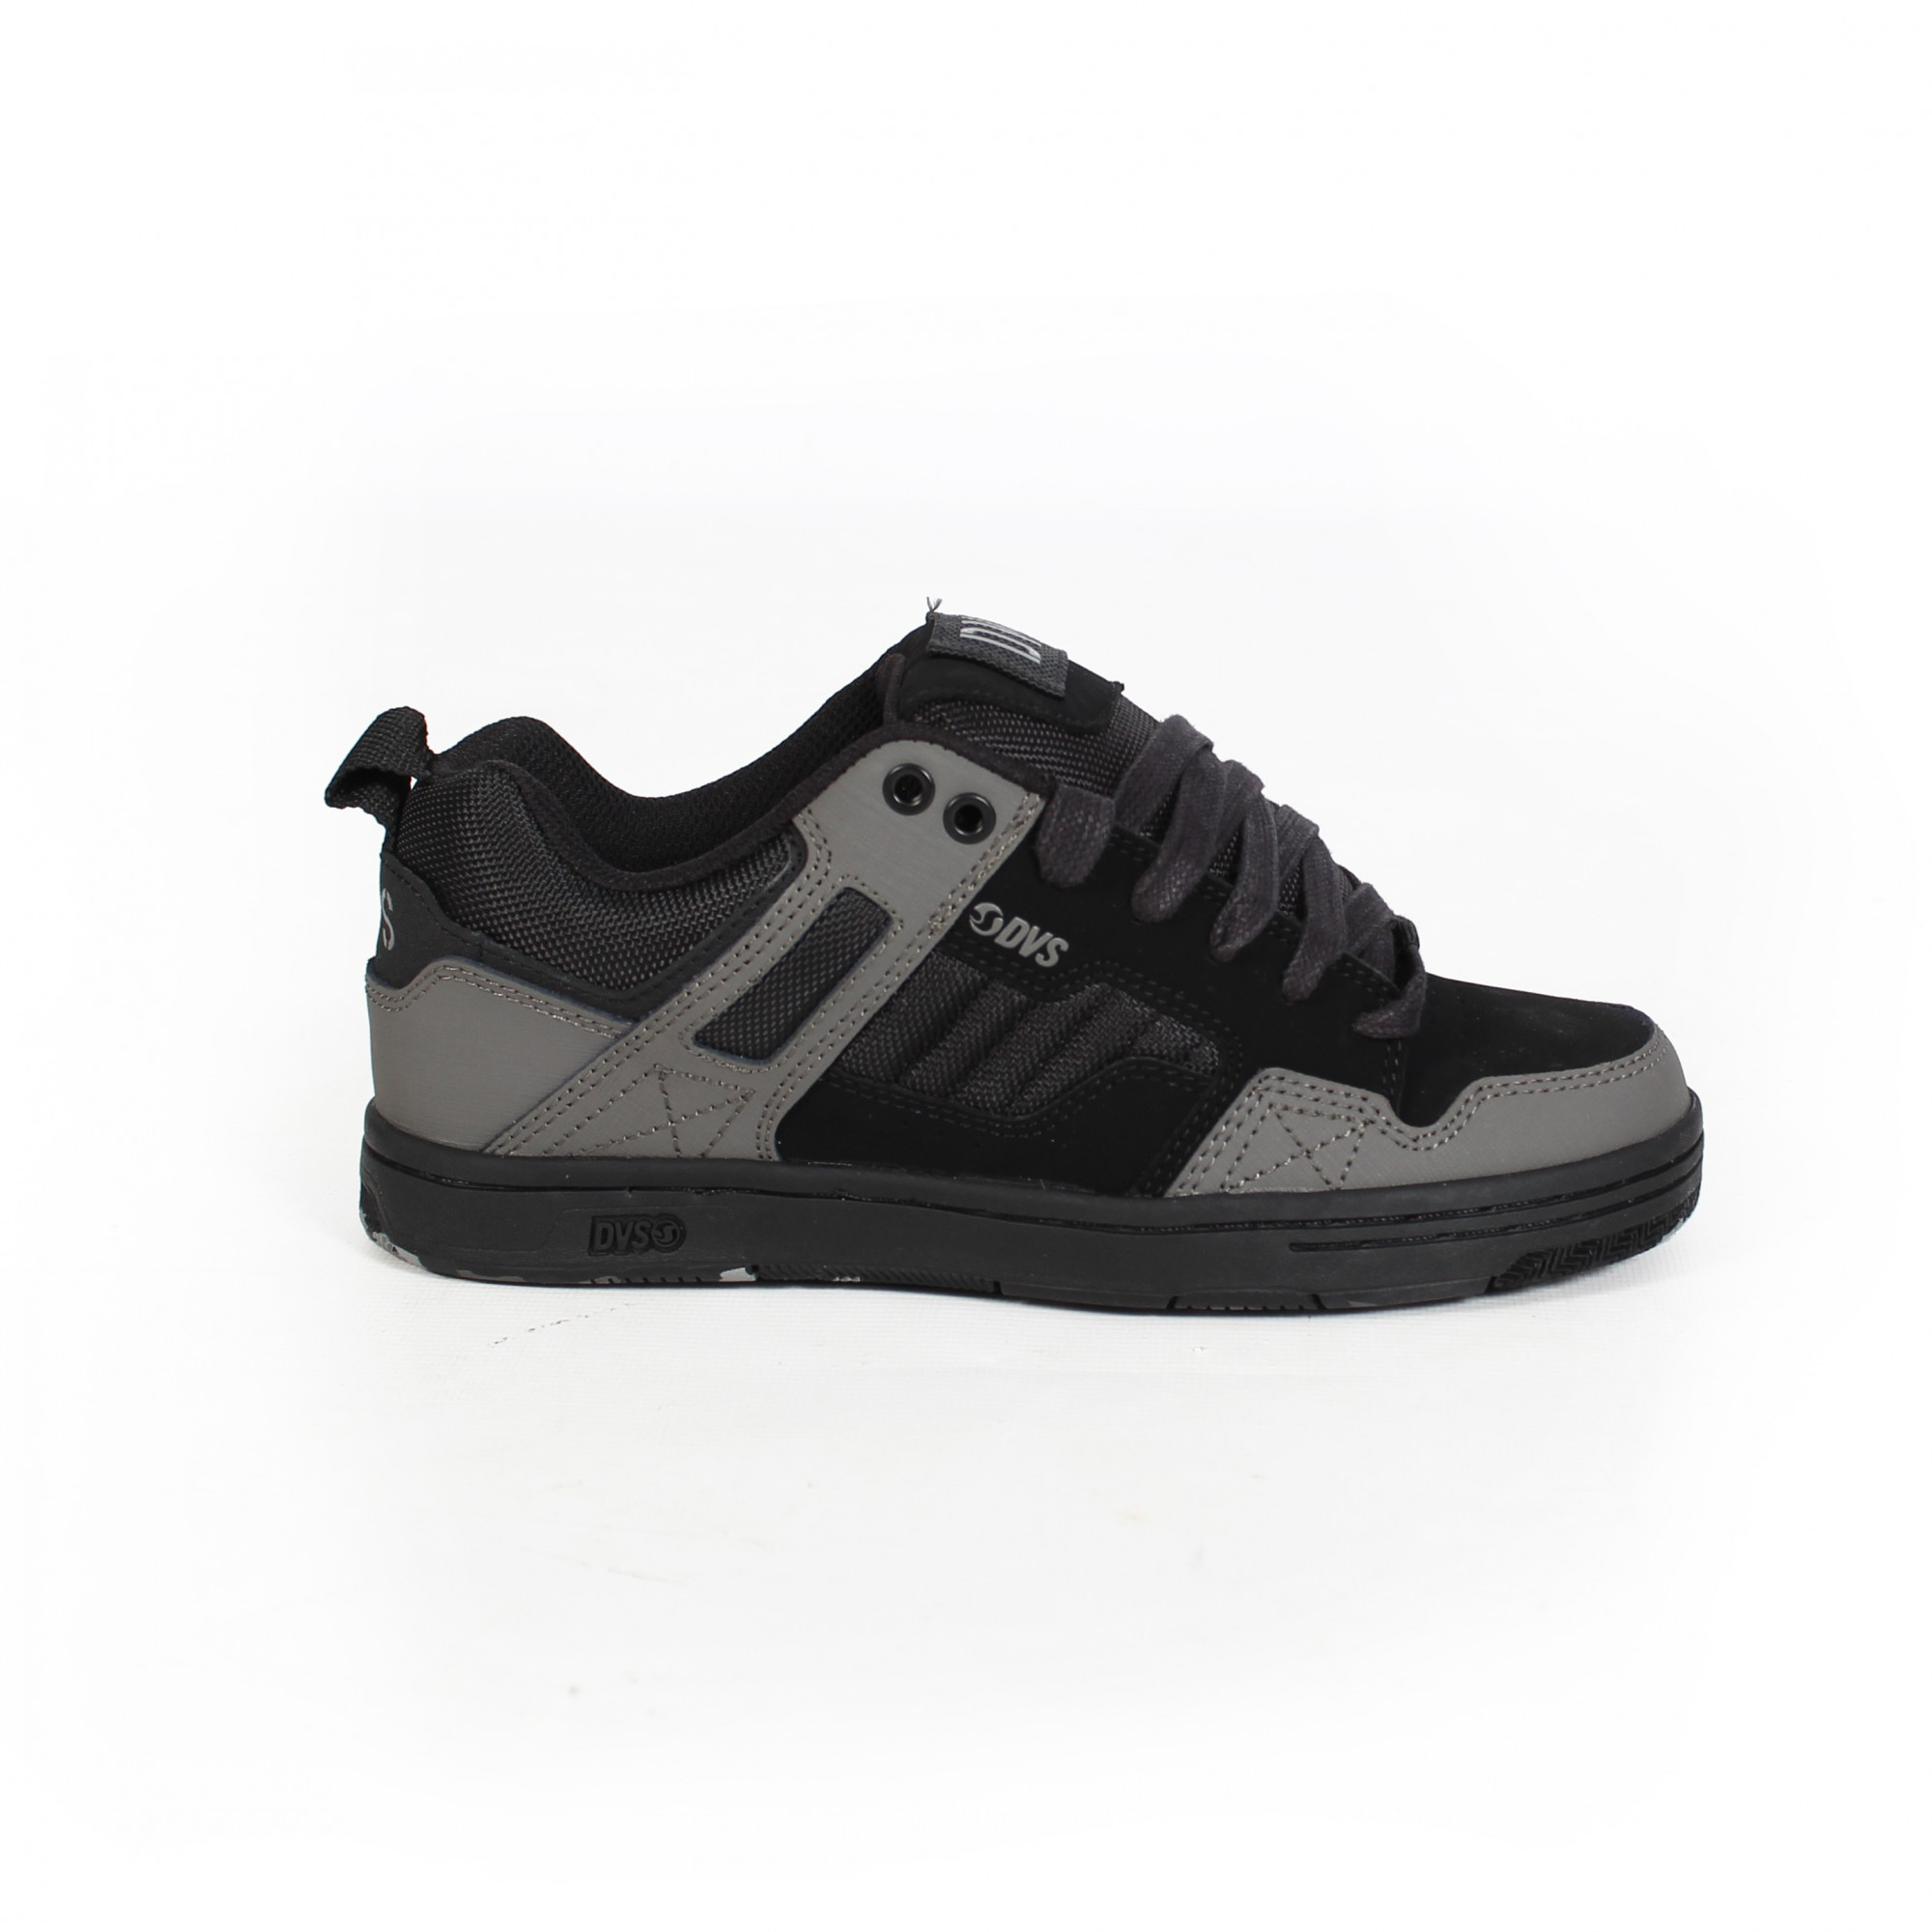 DVS Enduro 125, Black leather with grey details and camo